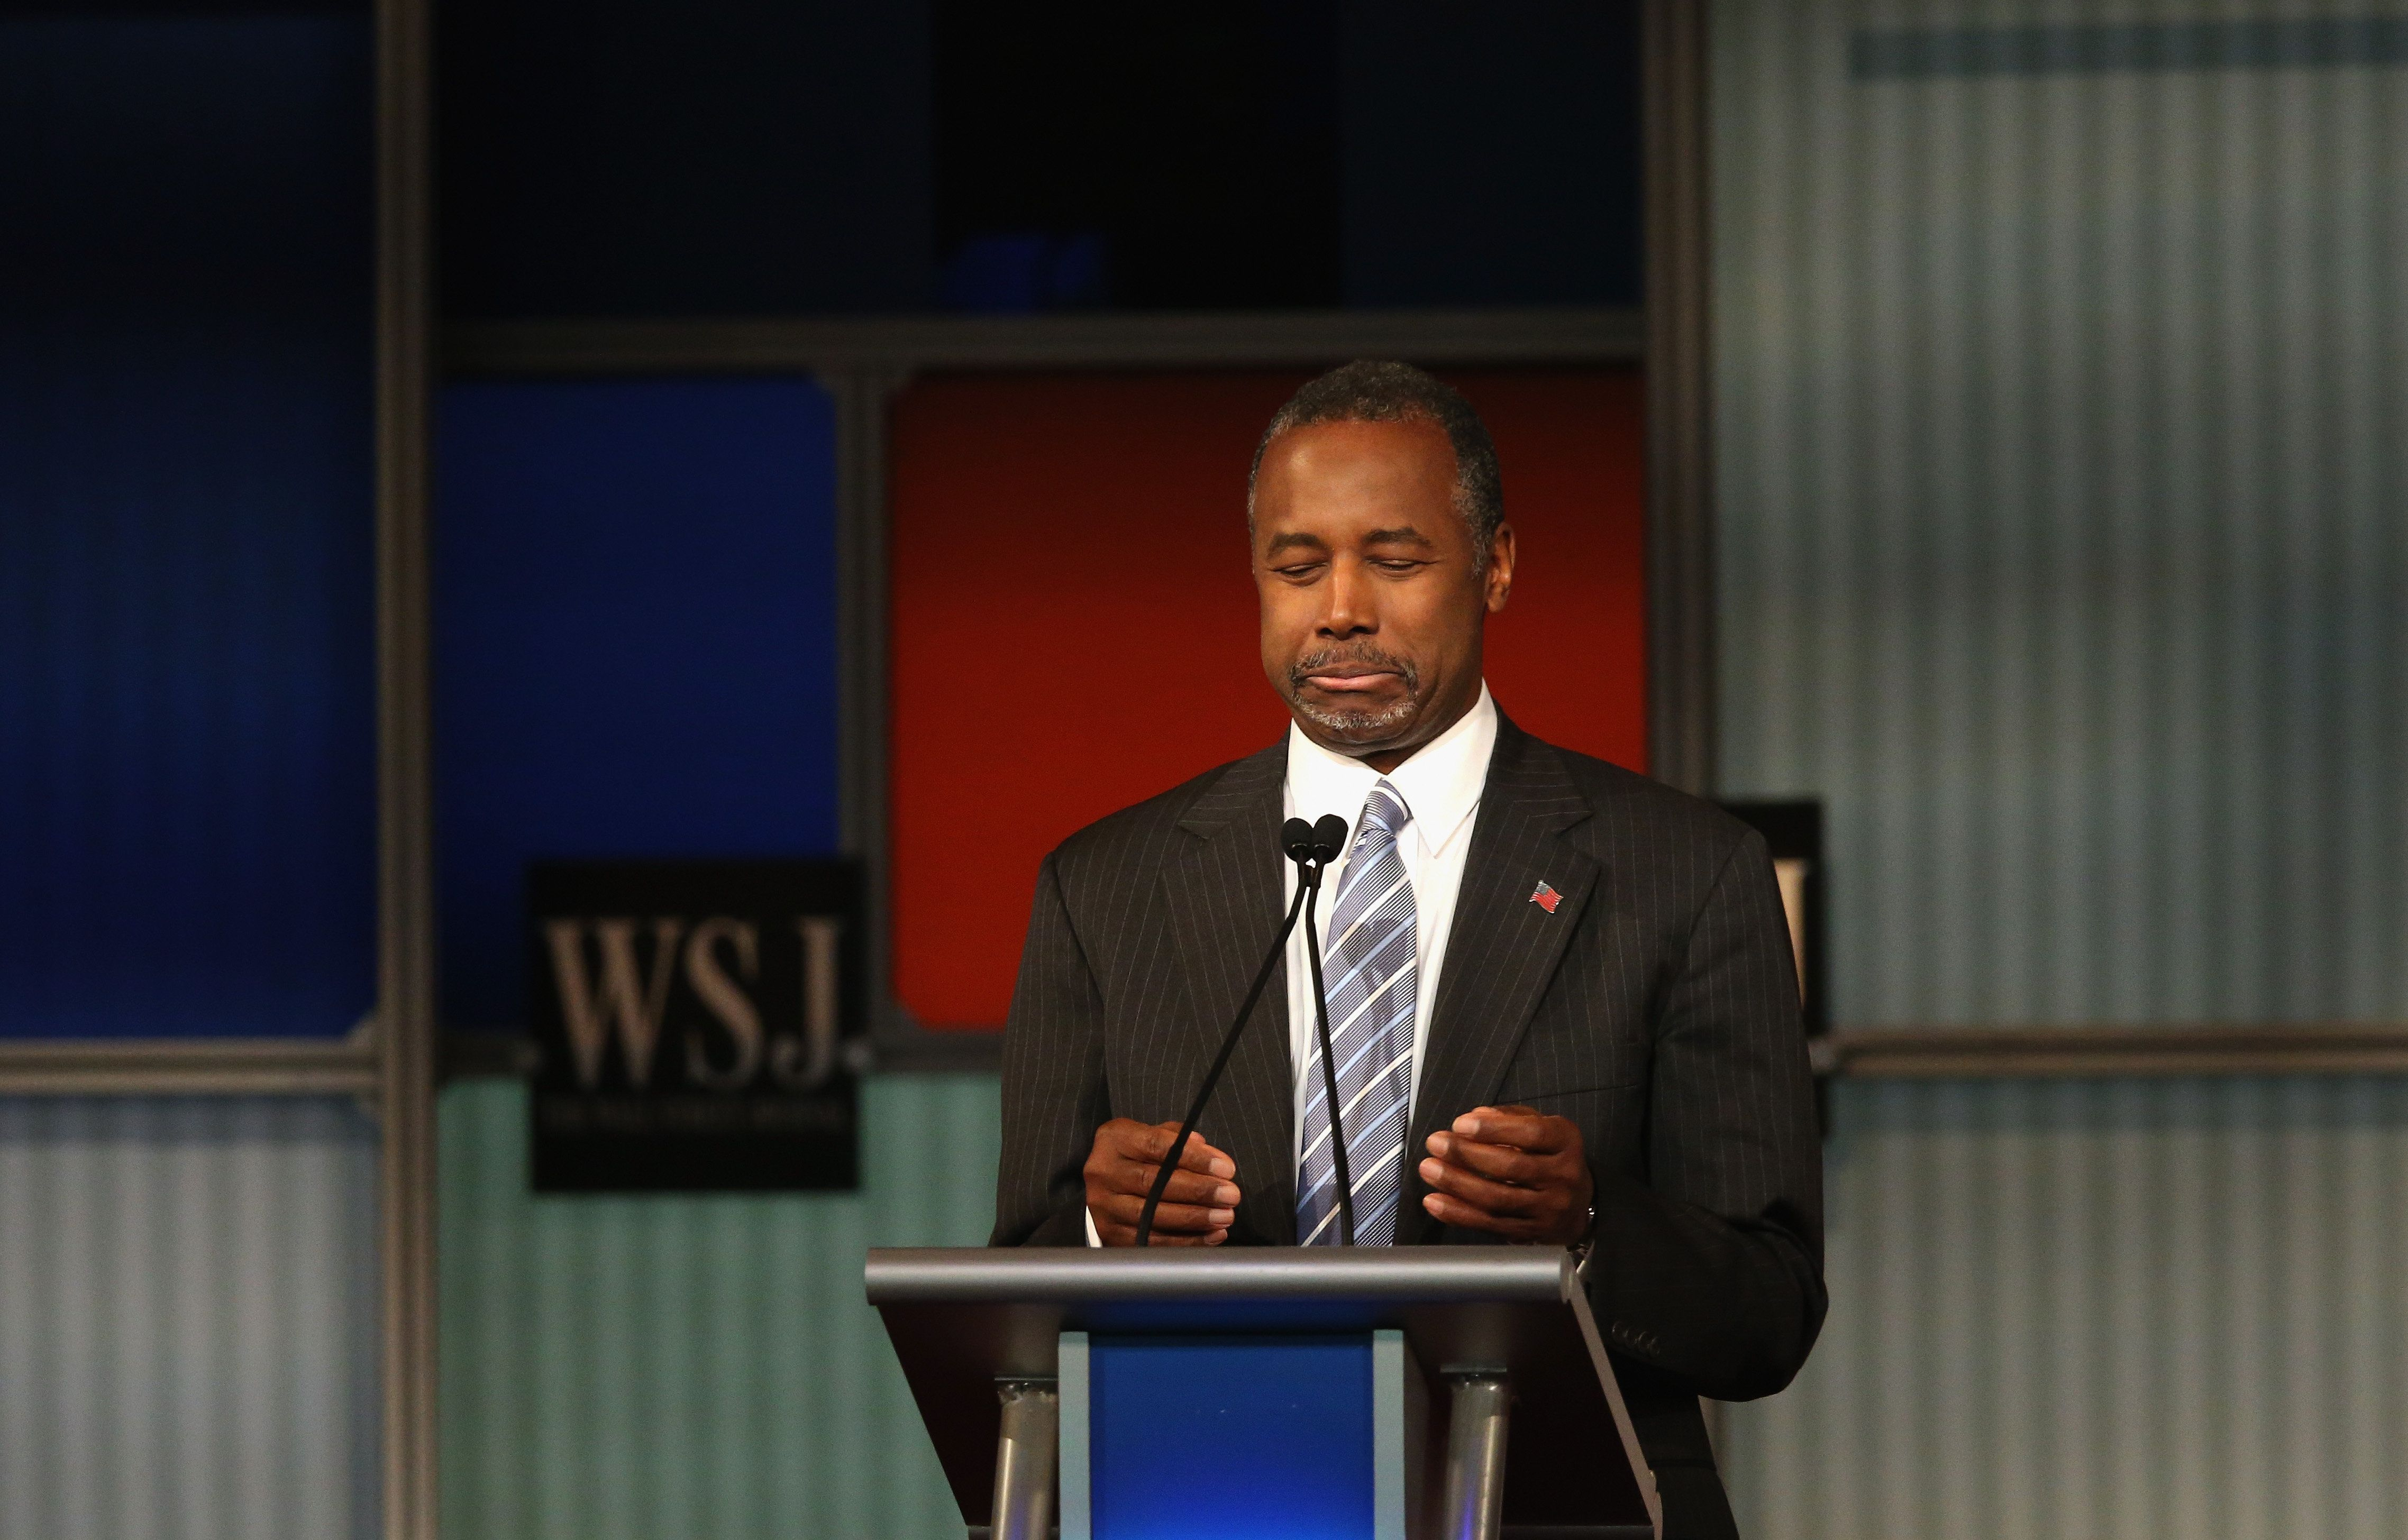 MILWAUKEE, WI - NOVEMBER 10:  Presidential candidate Ben Carson speaks during Republican Presidential Debate sponsored by Fox Business and the Wall Street Journal at the Milwaukee Theatre November 10, 2015 in Milwaukee, Wisconsin. The fourth Republican debate is held in two parts, one main debate for the top eight candidates, and another for four other candidates lower in the current polls.  (Photo by Scott Olson/Getty Images)